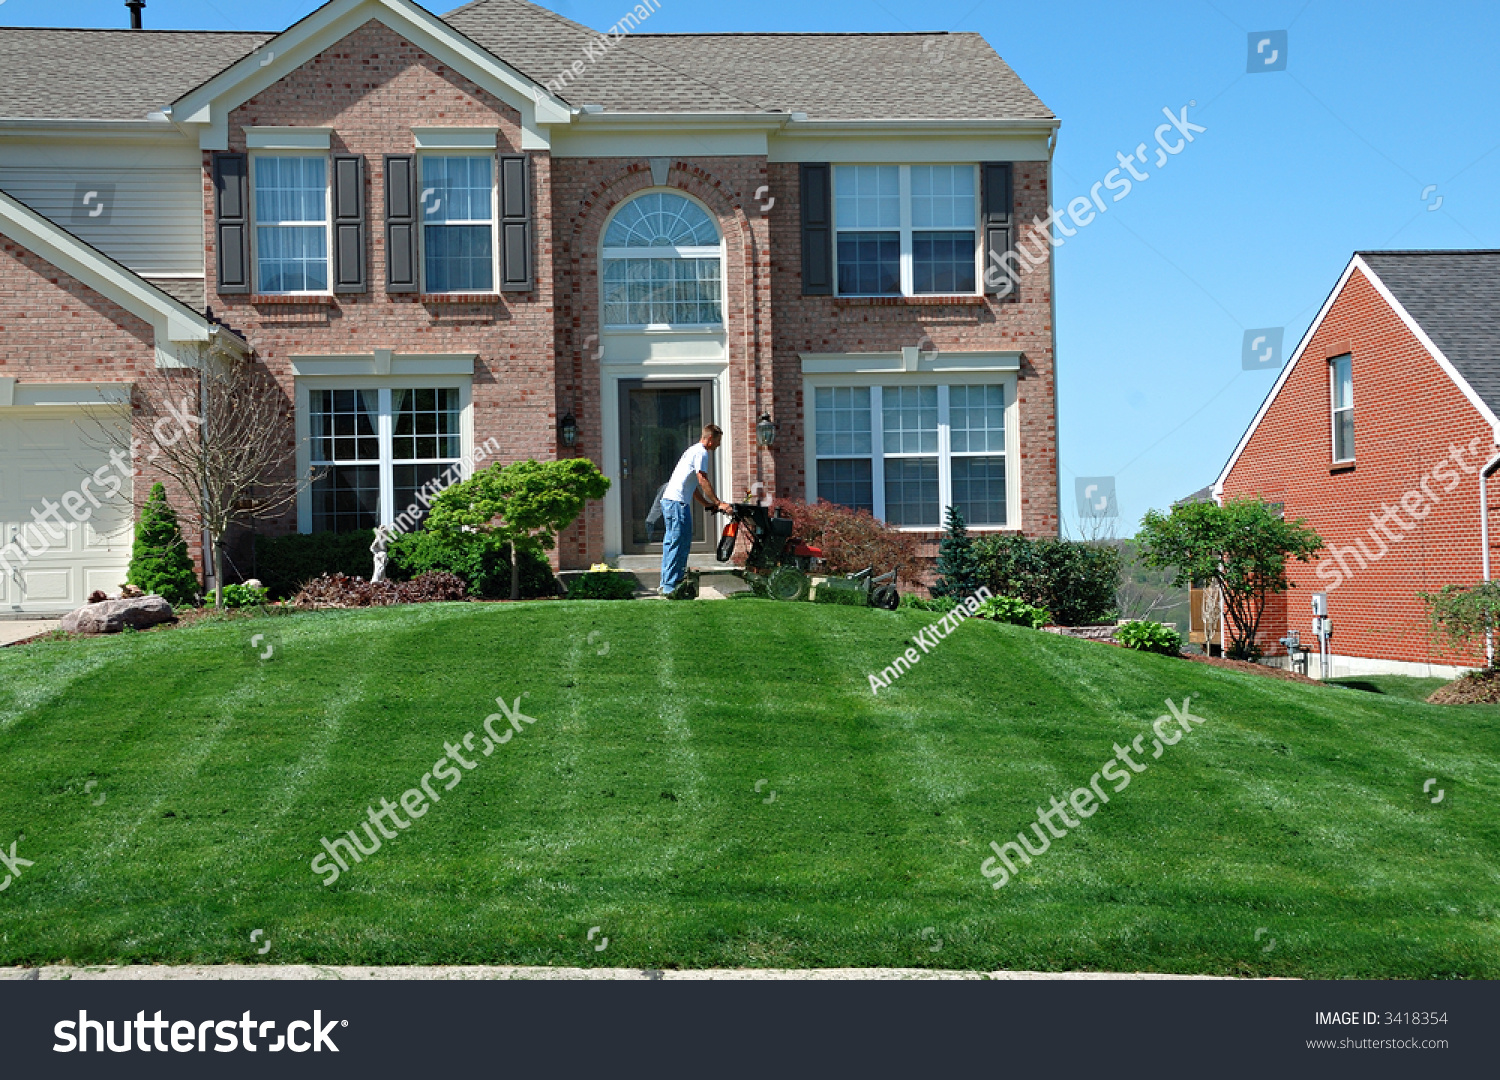 how to start a lawn care company